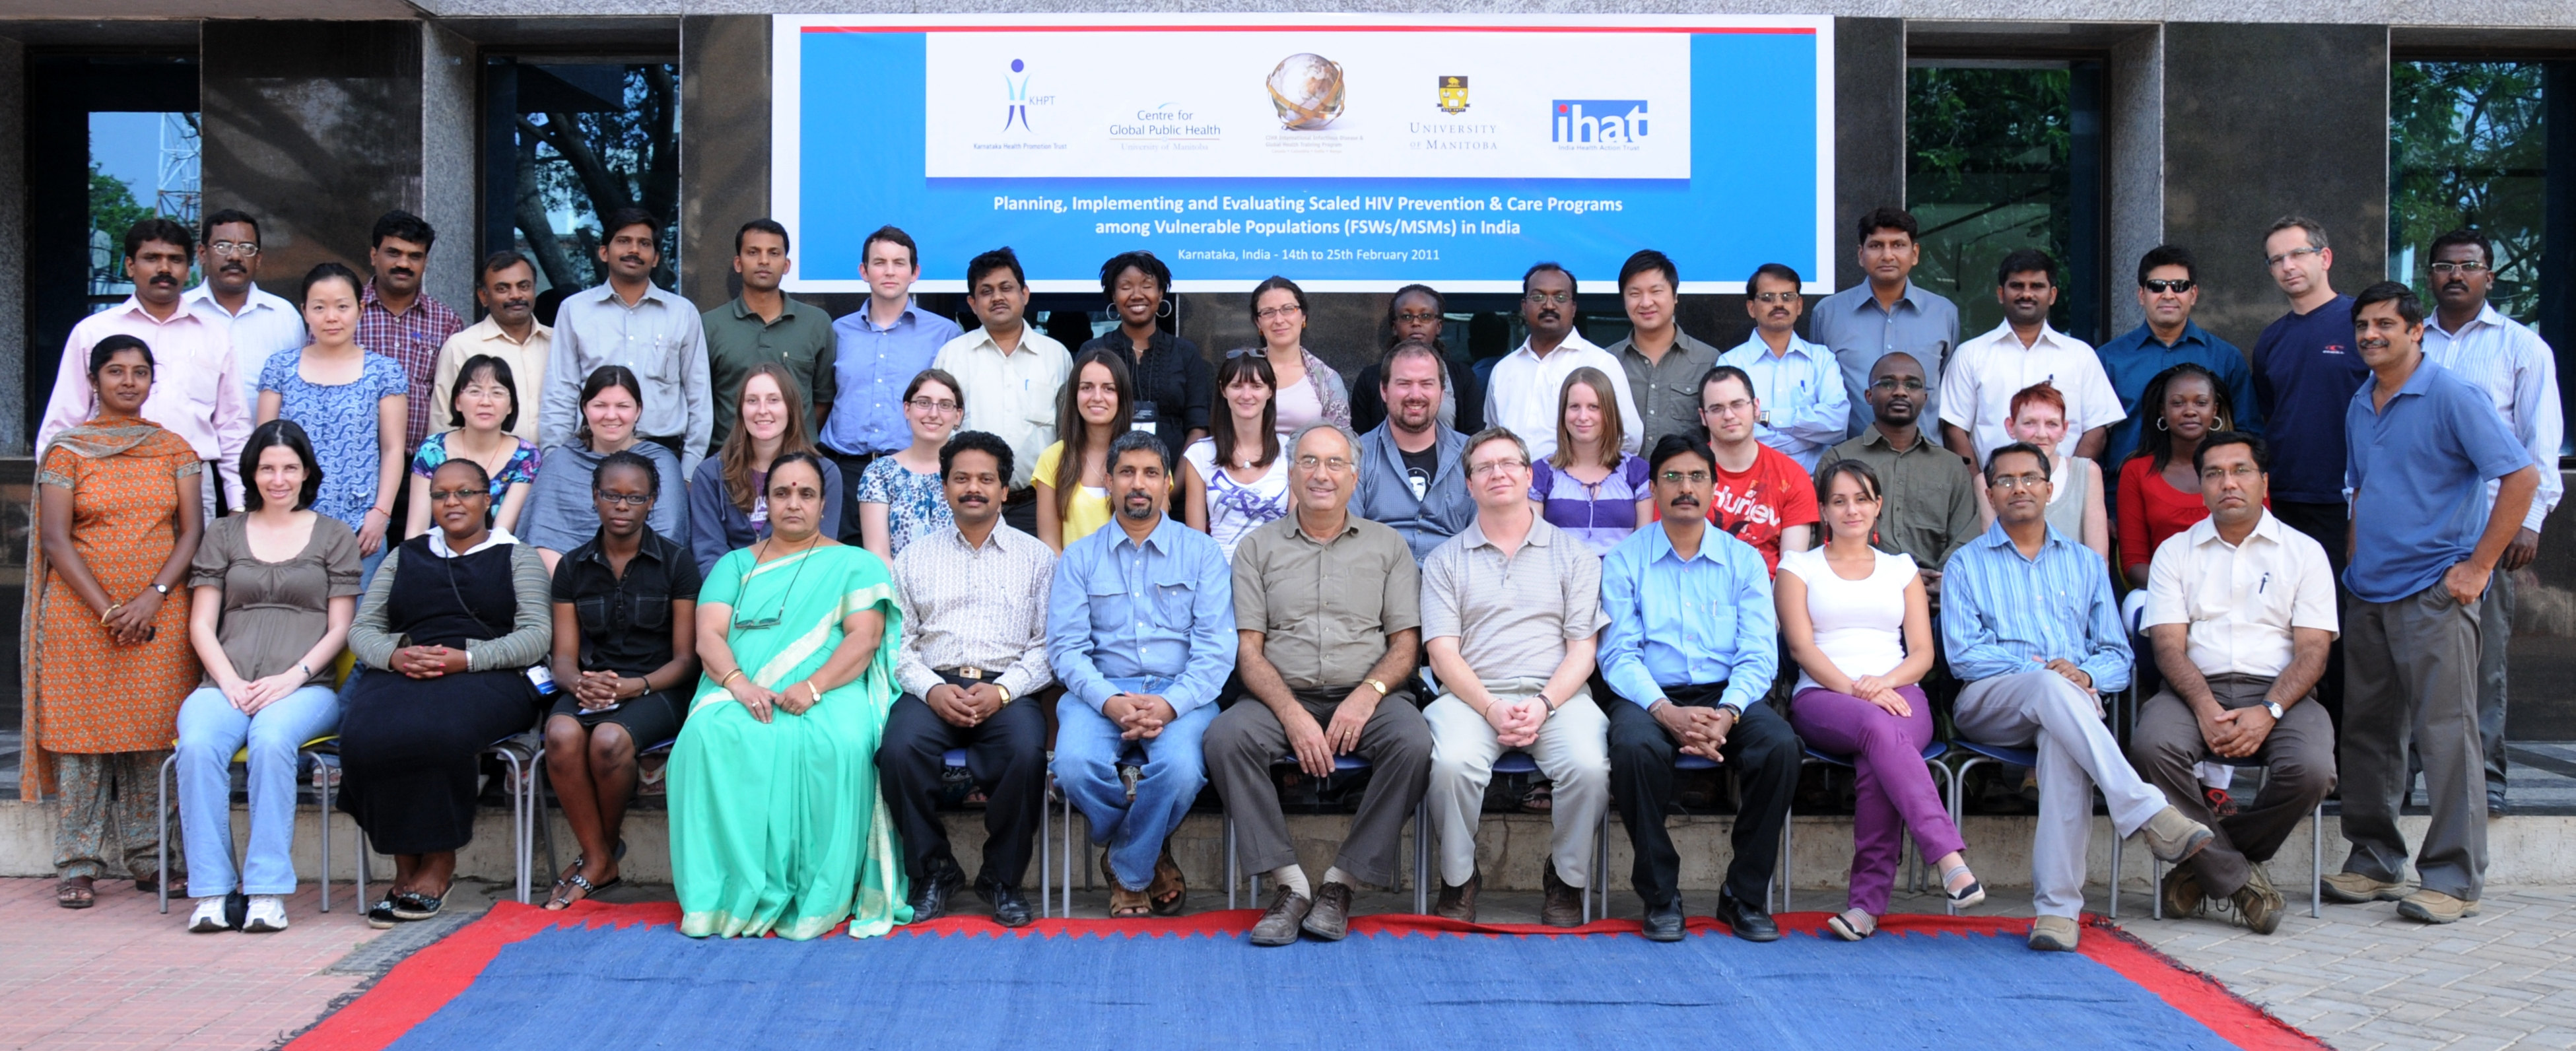 A group picture of all those attending the major course offering in Bangalore, India in February 2011.